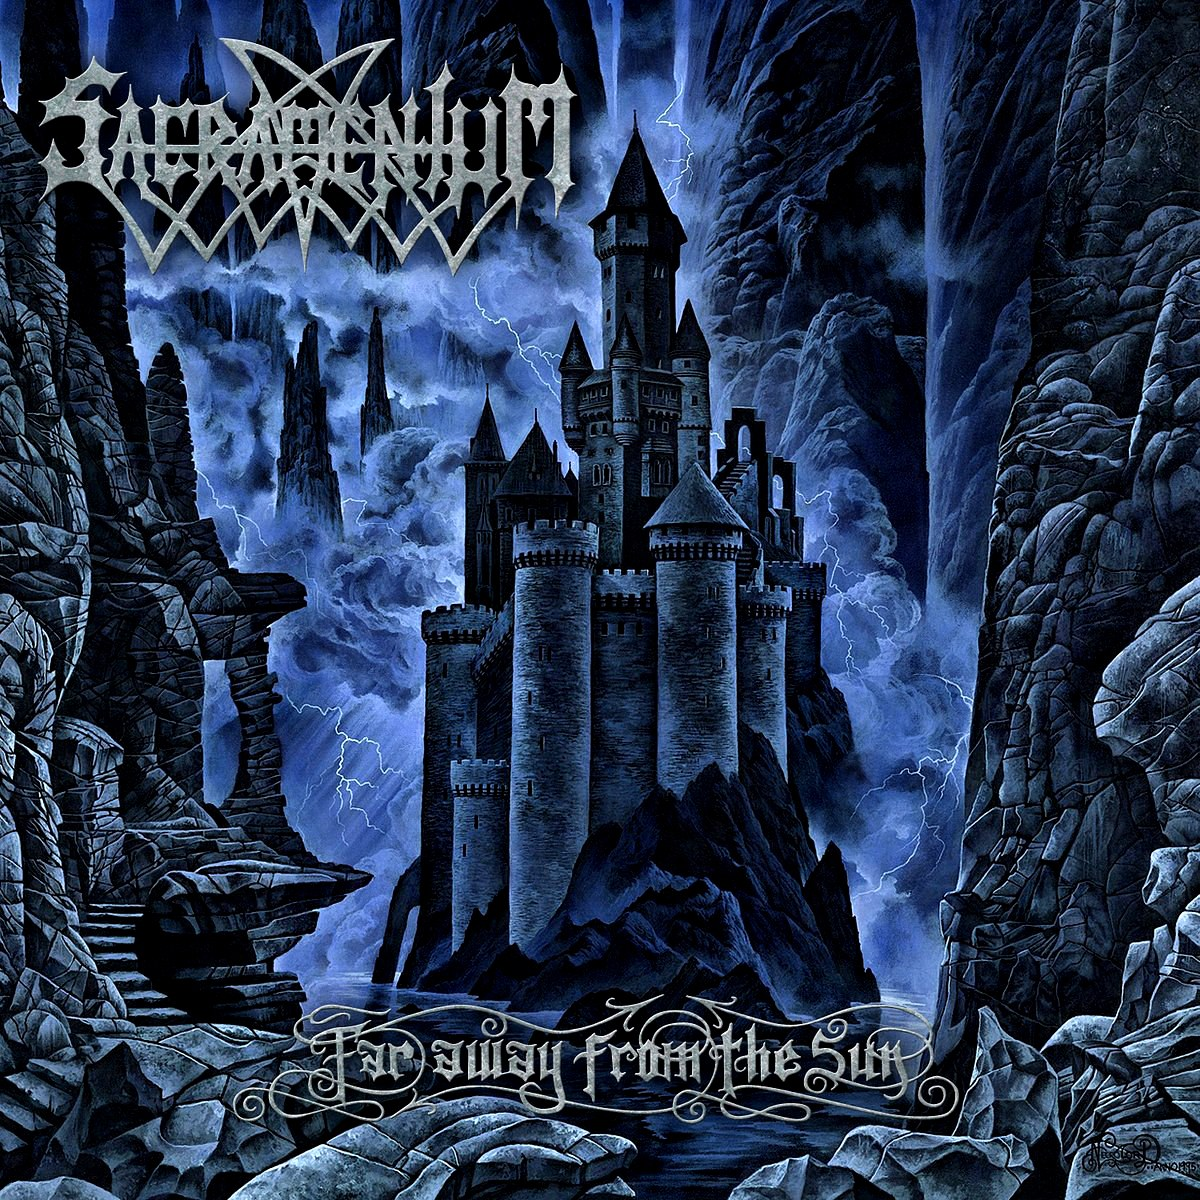 Review for Sacramentum - Far Away from the Sun